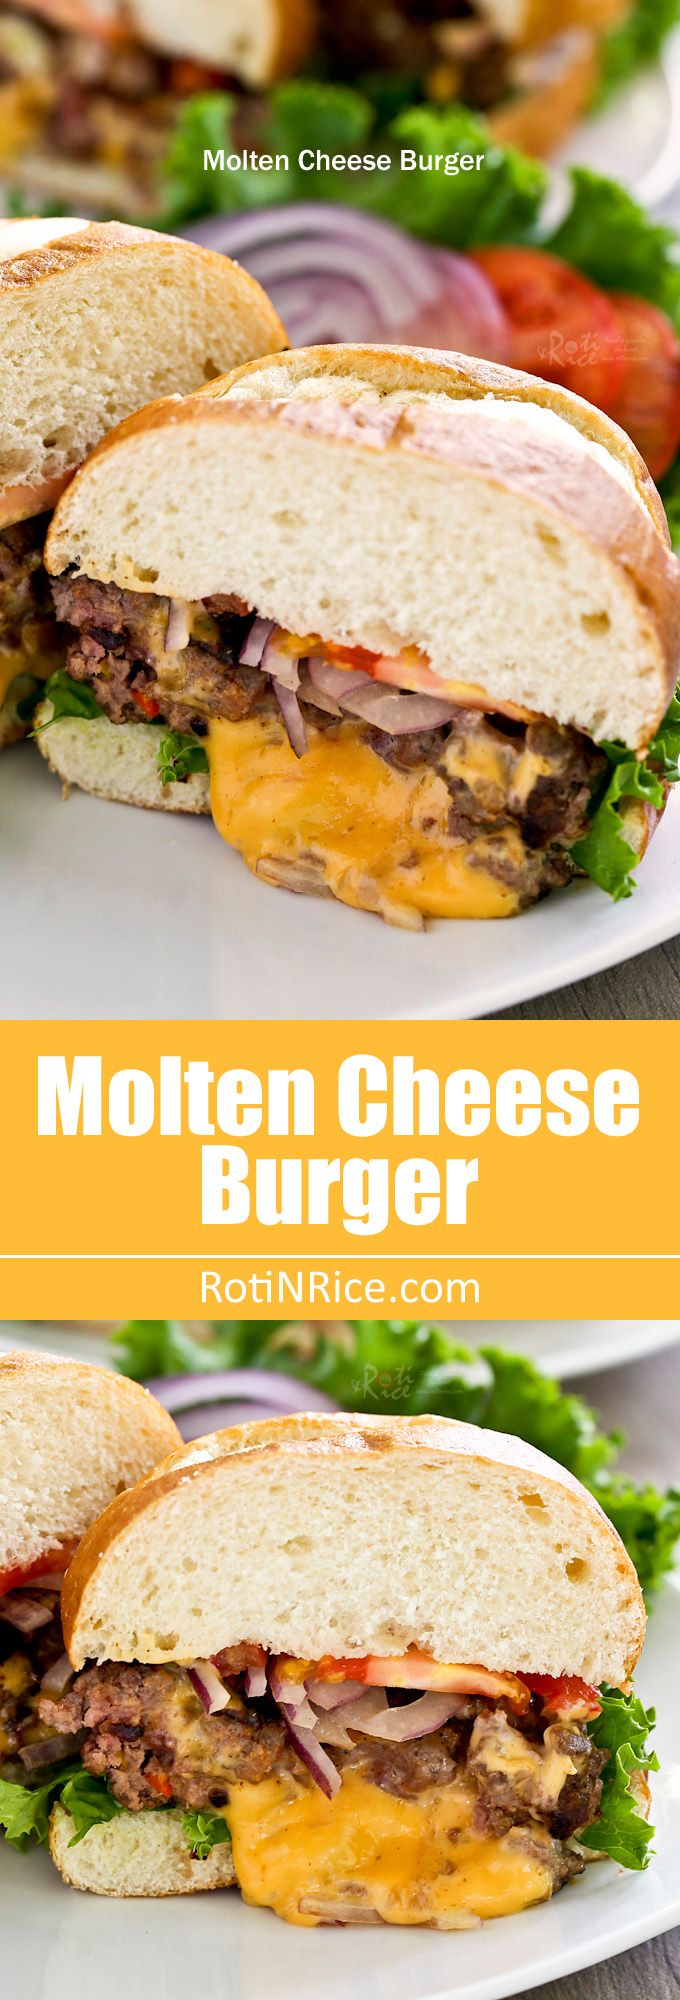 These Molten Cheese Burger oozing with melted cheese and flavor are the juiciest hamburgers you ever tasted. They are a must try! They are the juiciest burgers you ever tasted. | RotiNRice.com